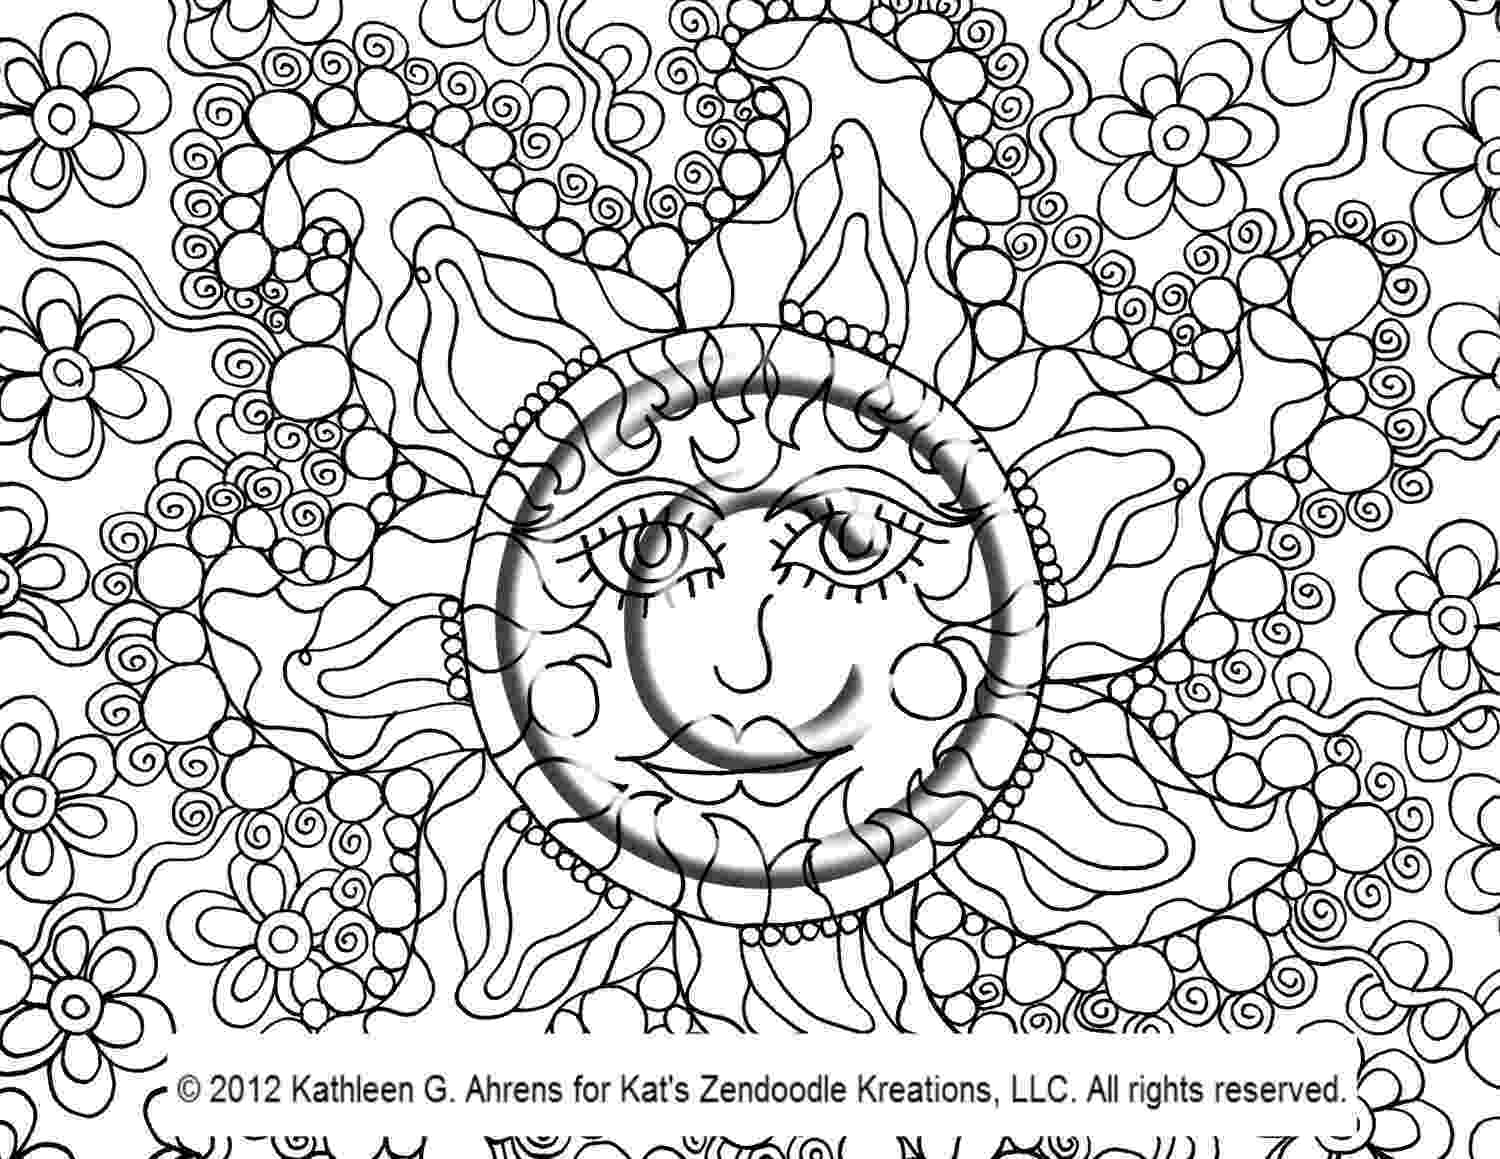 psychedelic colouring pages psychedelic coloring pages to download and print for free pages psychedelic colouring